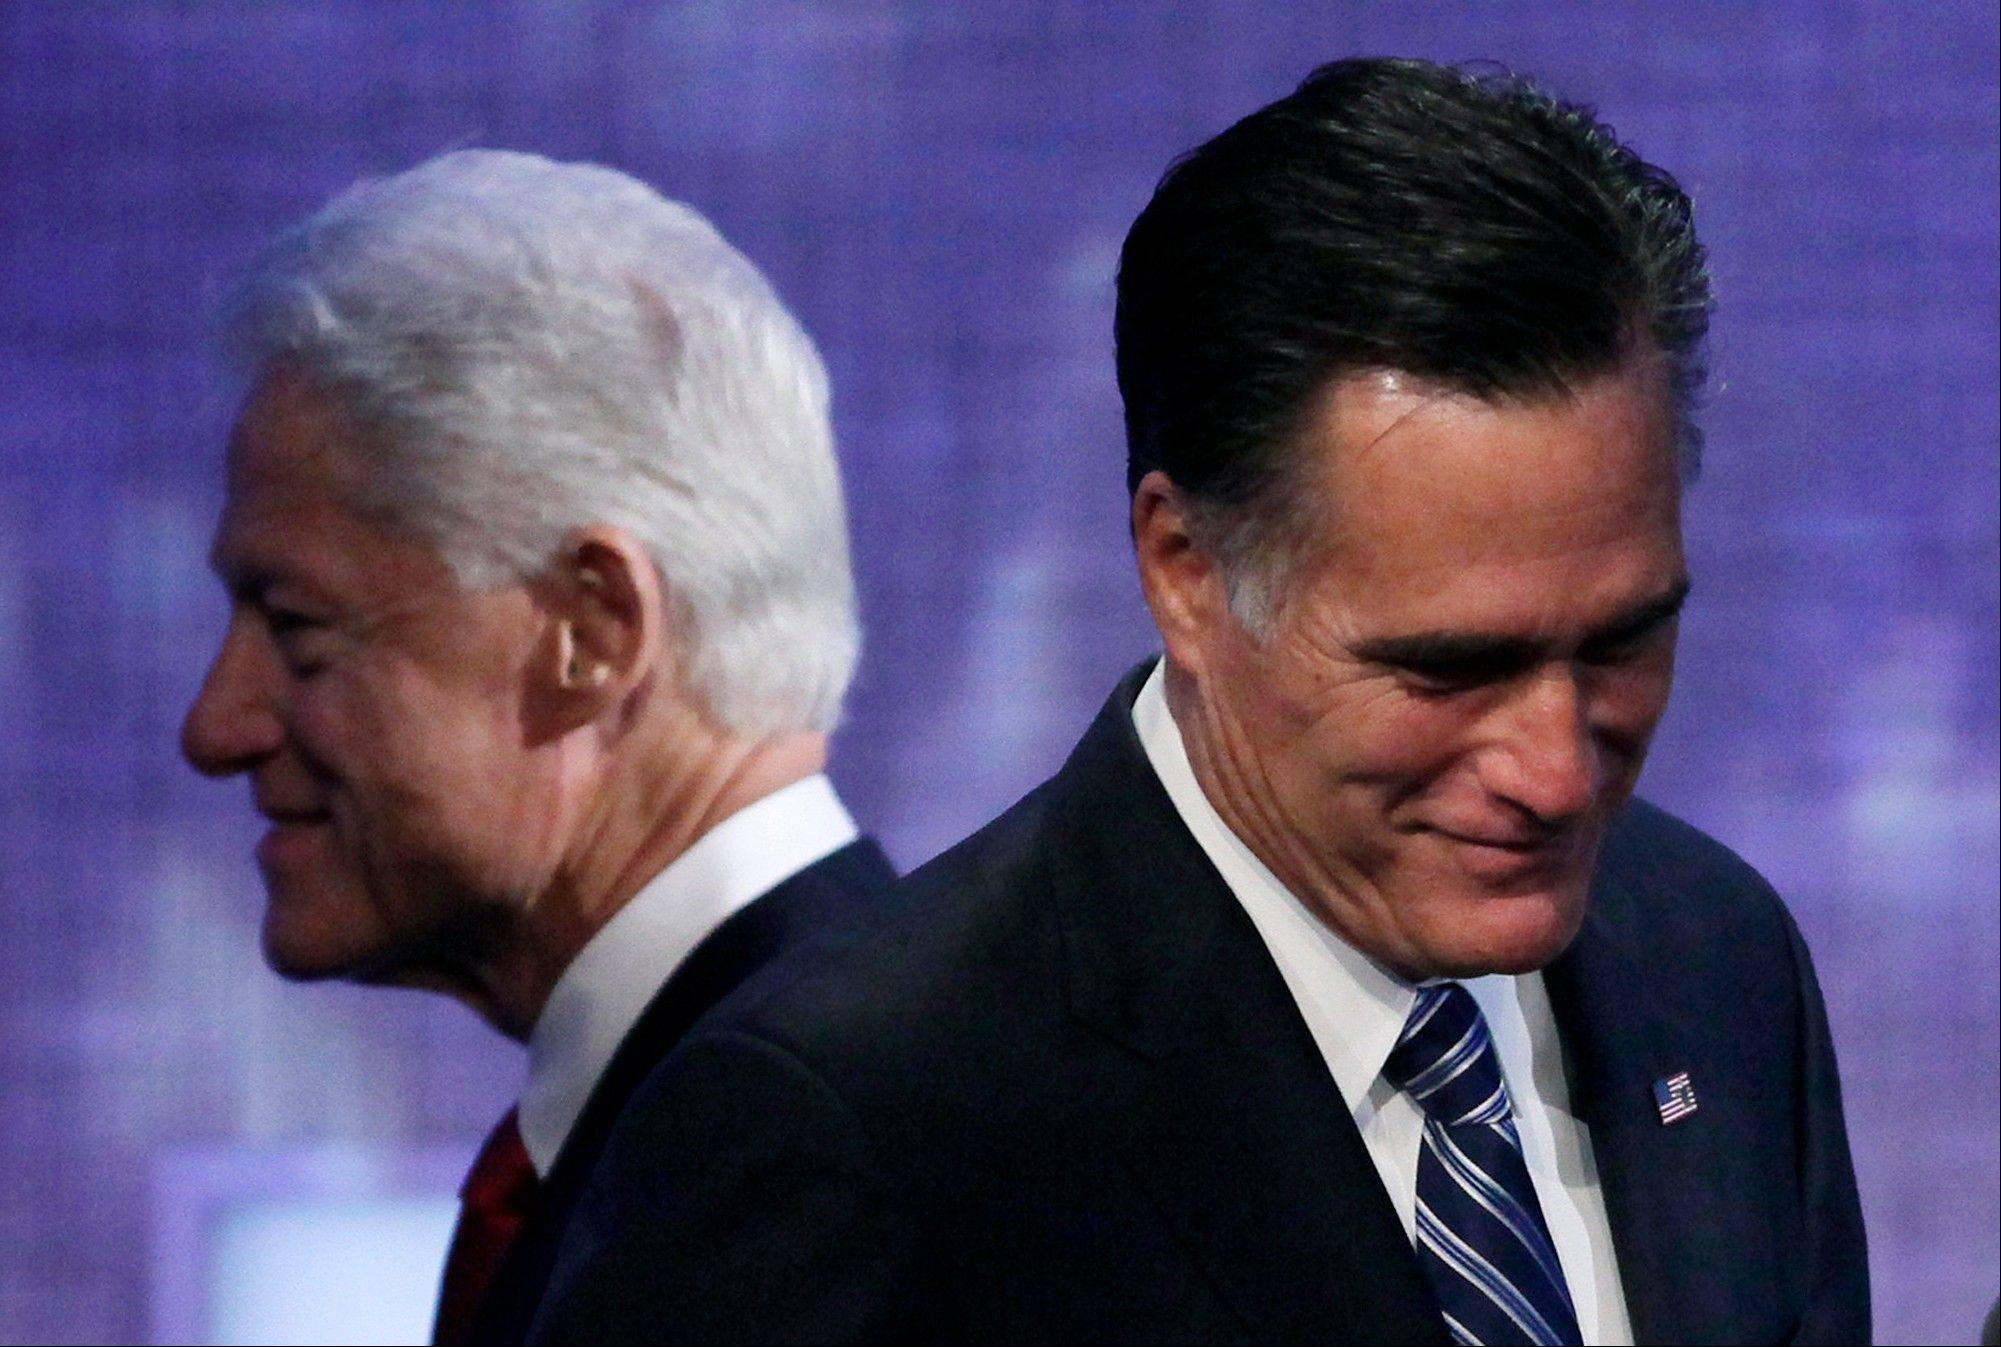 Republican presidential candidate Mitt Romney steps to the podium after an introduction by former President Bill Clinton, Tuesday, Sept. 25, 2012, at the Clinton Global Initiative in New York.